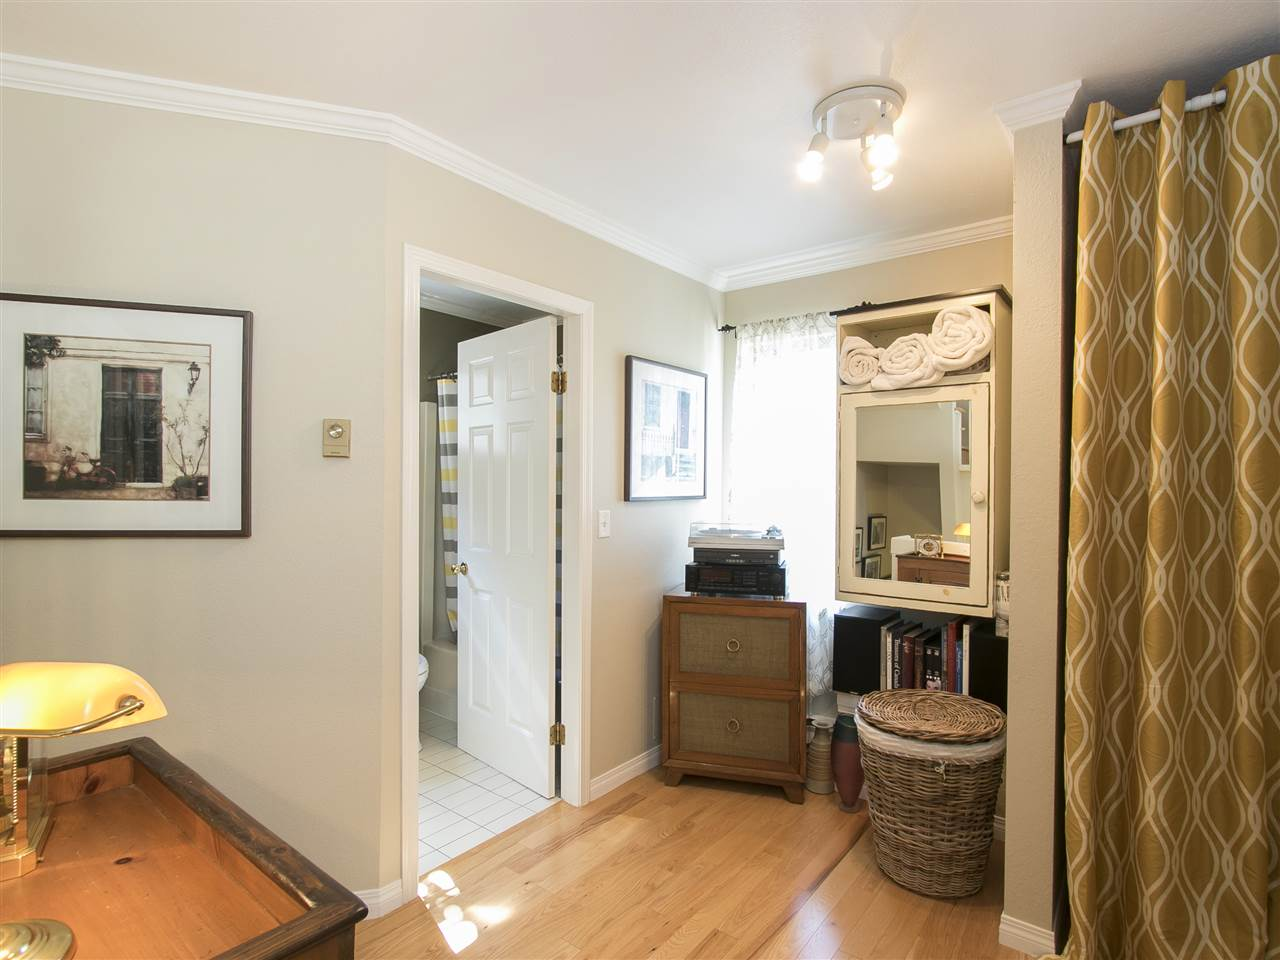 Photo 11: 314 W 15TH Avenue in Vancouver: Mount Pleasant VW Townhouse for sale (Vancouver West)  : MLS(r) # R2186637